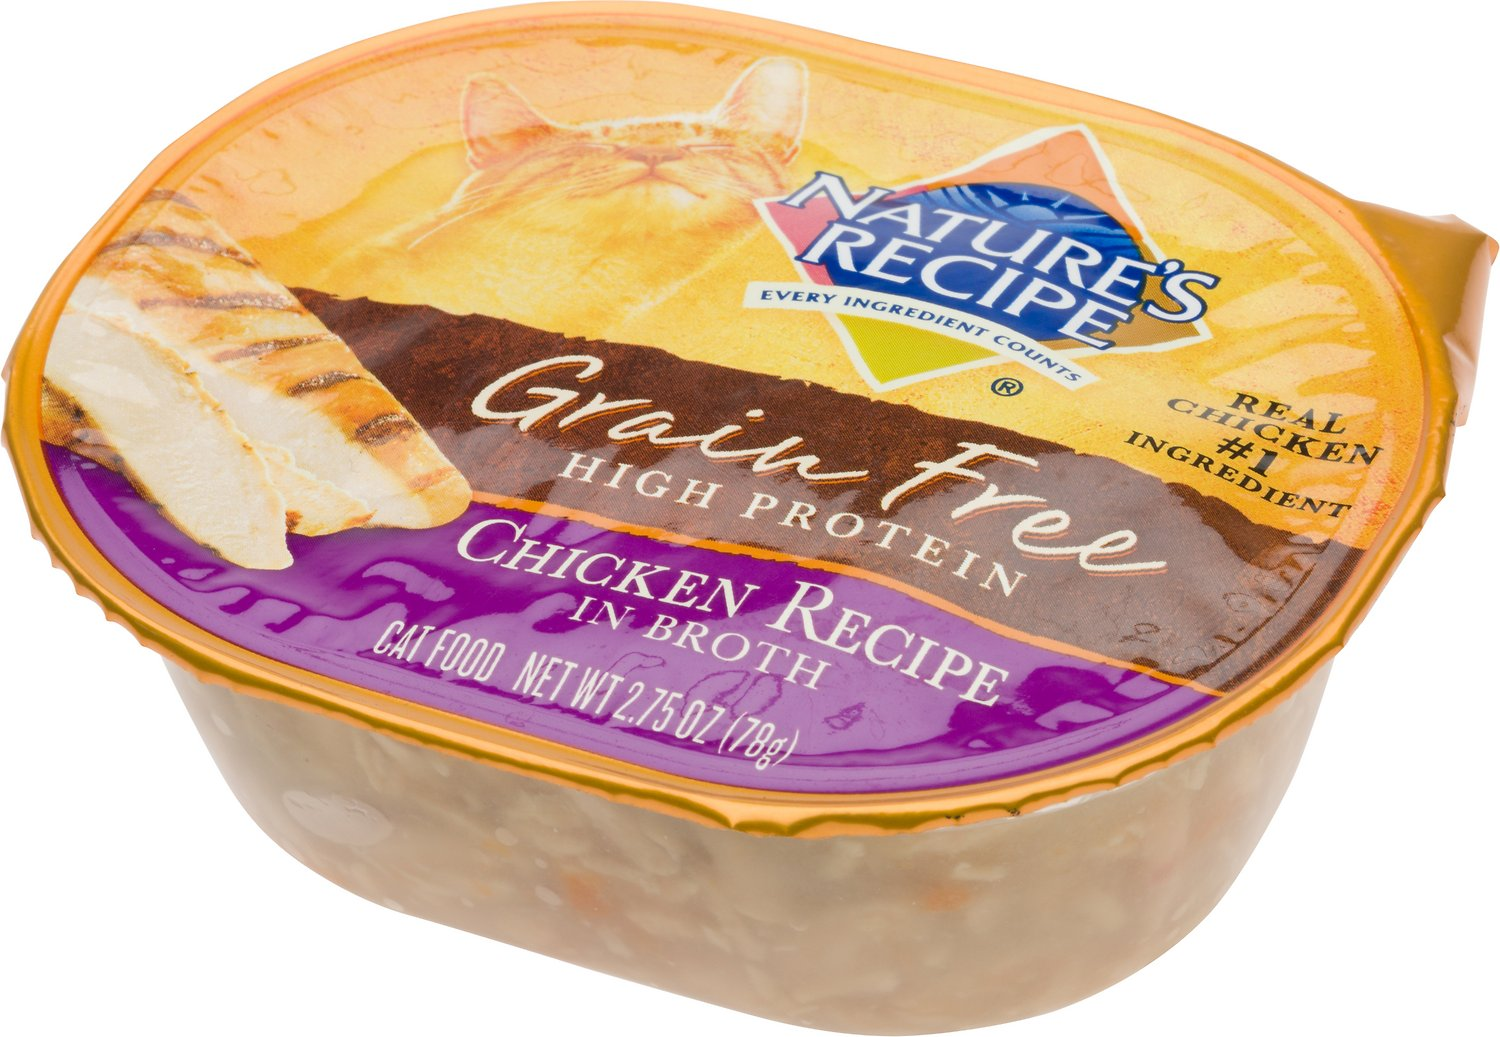 Natures recipe grain free chicken recipe in broth wet cat food video forumfinder Choice Image